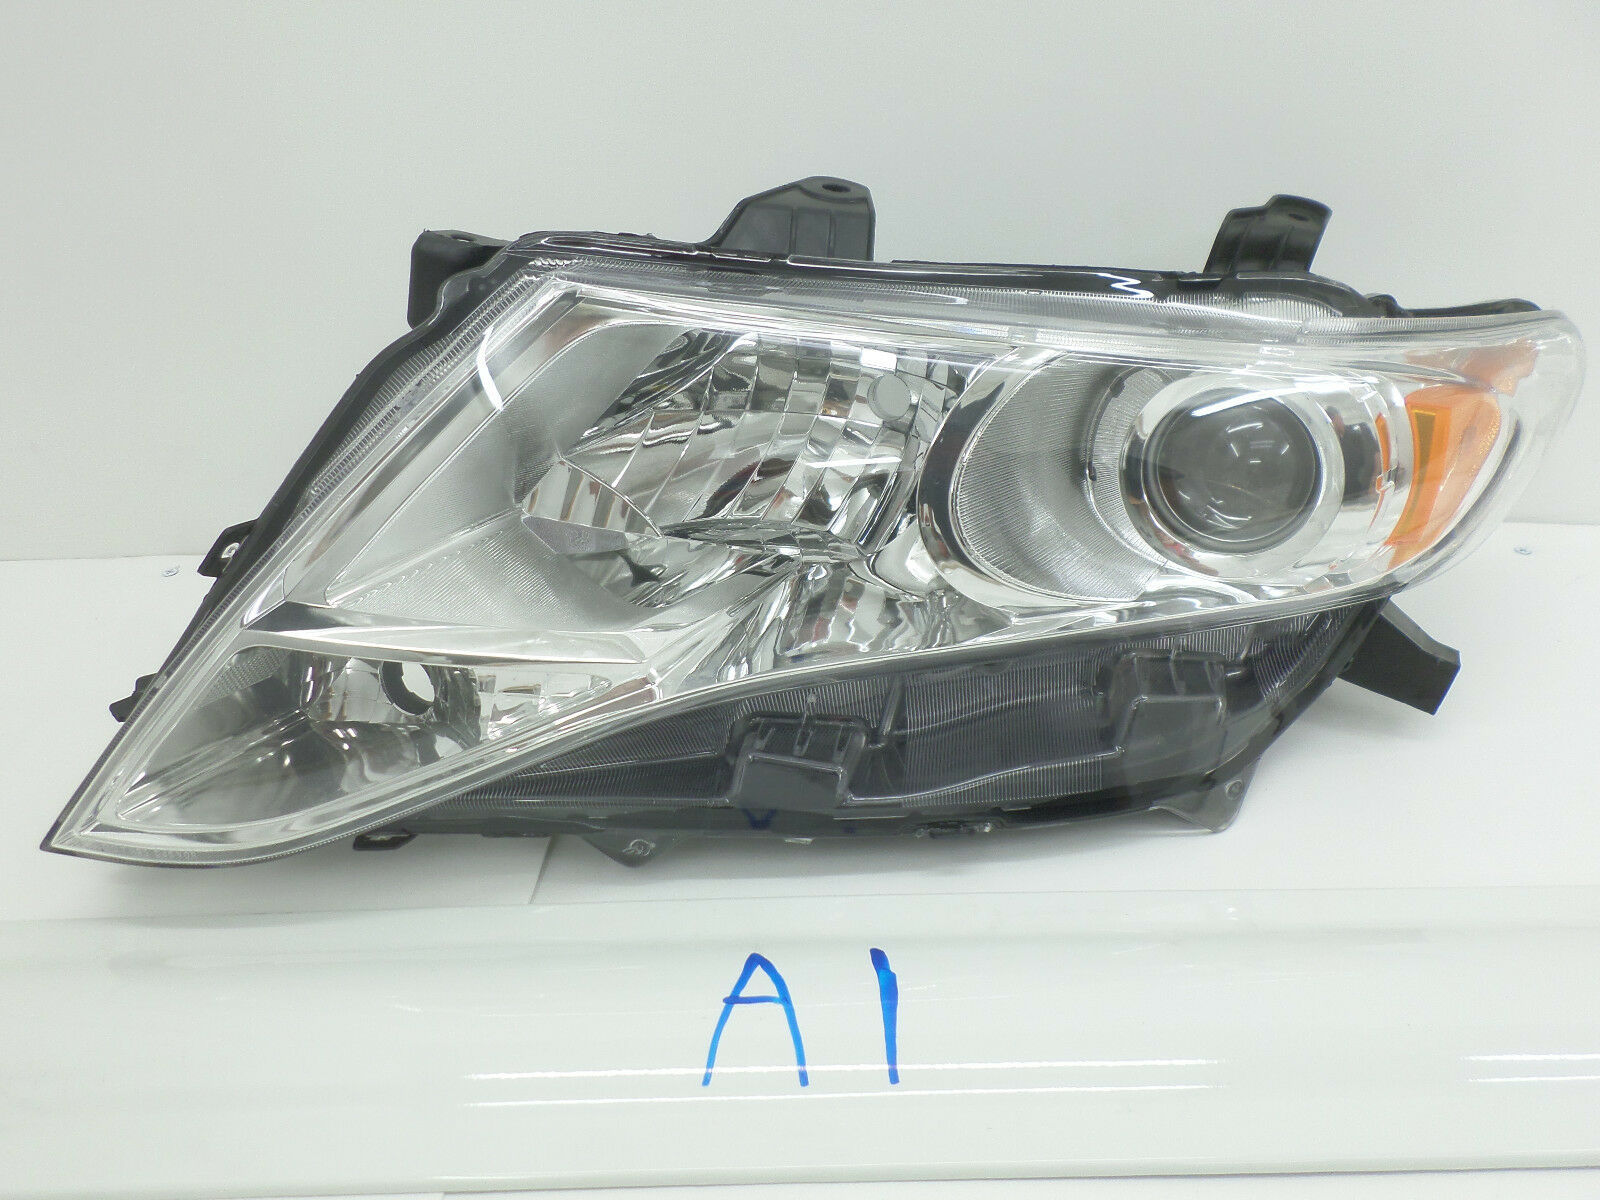 Primary image for OEM HEAD LIGHT HEADLIGHT LAMP HEADLAMP TOYOTA VENZA XENON HID 09-12 nick mount